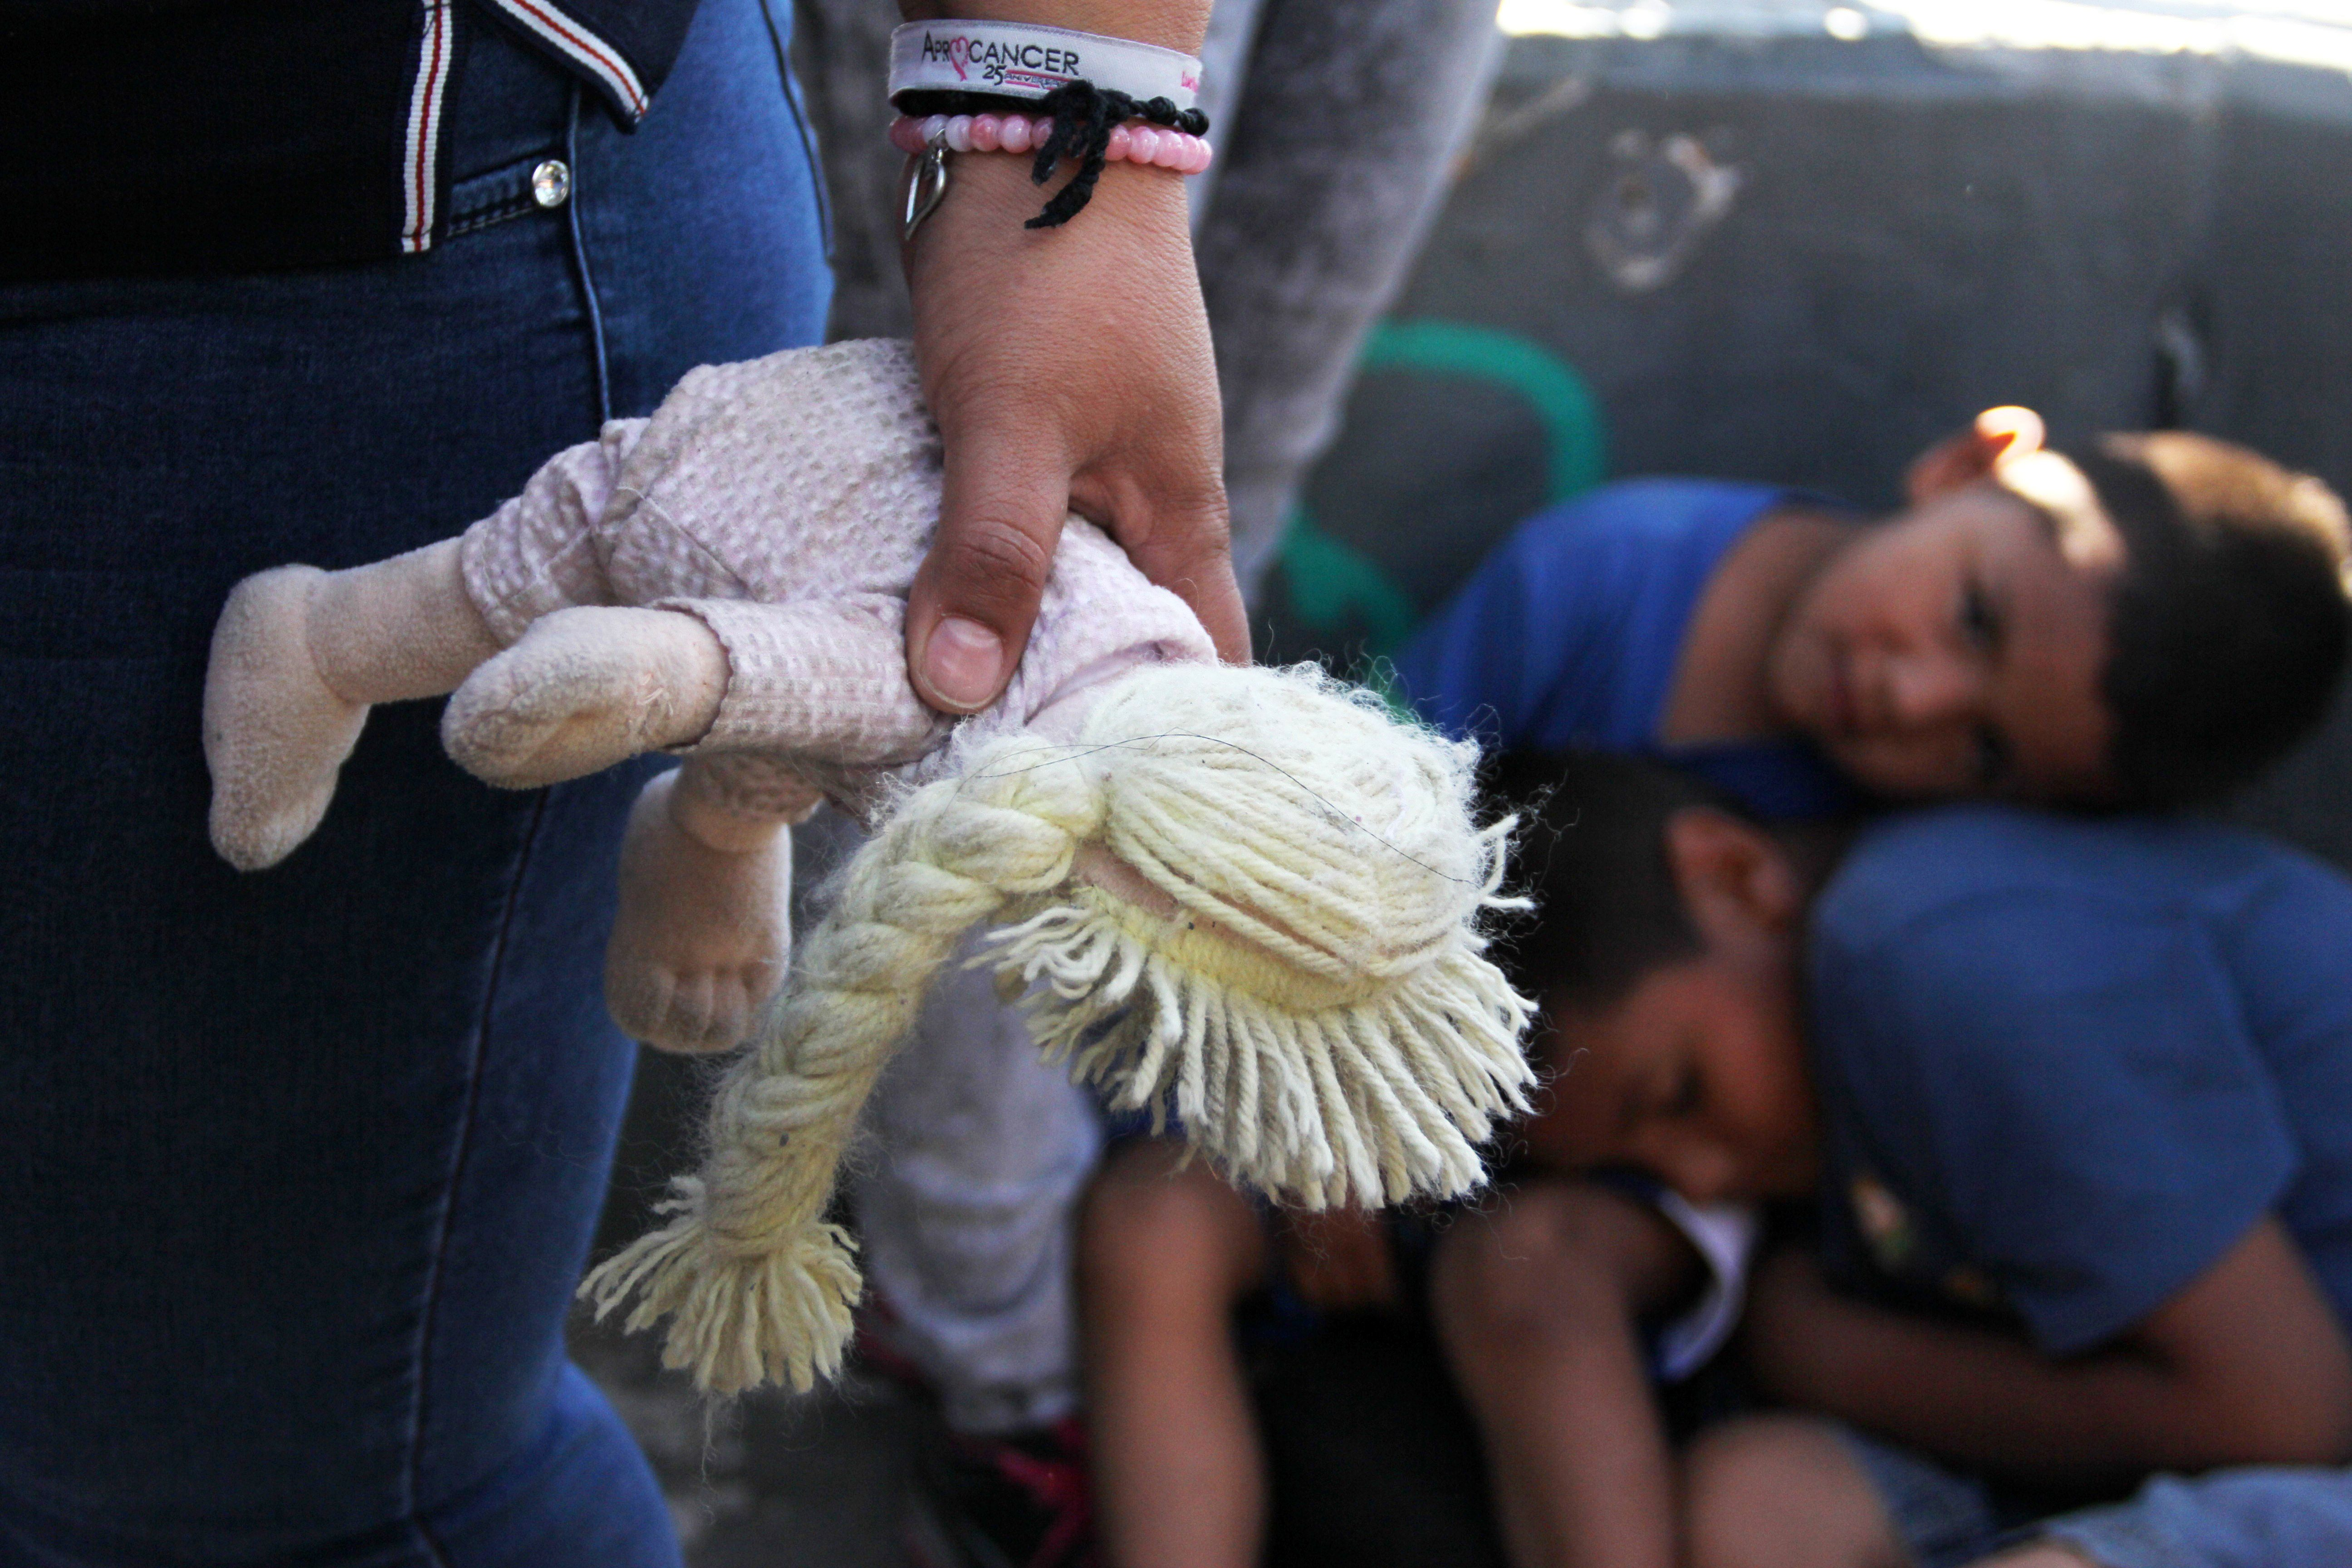 A Mexican woman holds a doll next to children at the Paso Del Norte Port of Entry, in the US-Mexico border in Chihuahua state, Mexico on June 20, 2018. - US President Donald Trump said Wednesday he would sign an executive order to keep migrant families together at the border with Mexico, amid an escalating uproar over the separation of children from their parents. (Photo by HERIKA MARTINEZ / AFP)        (Photo credit should read HERIKA MARTINEZ/AFP/Getty Images)